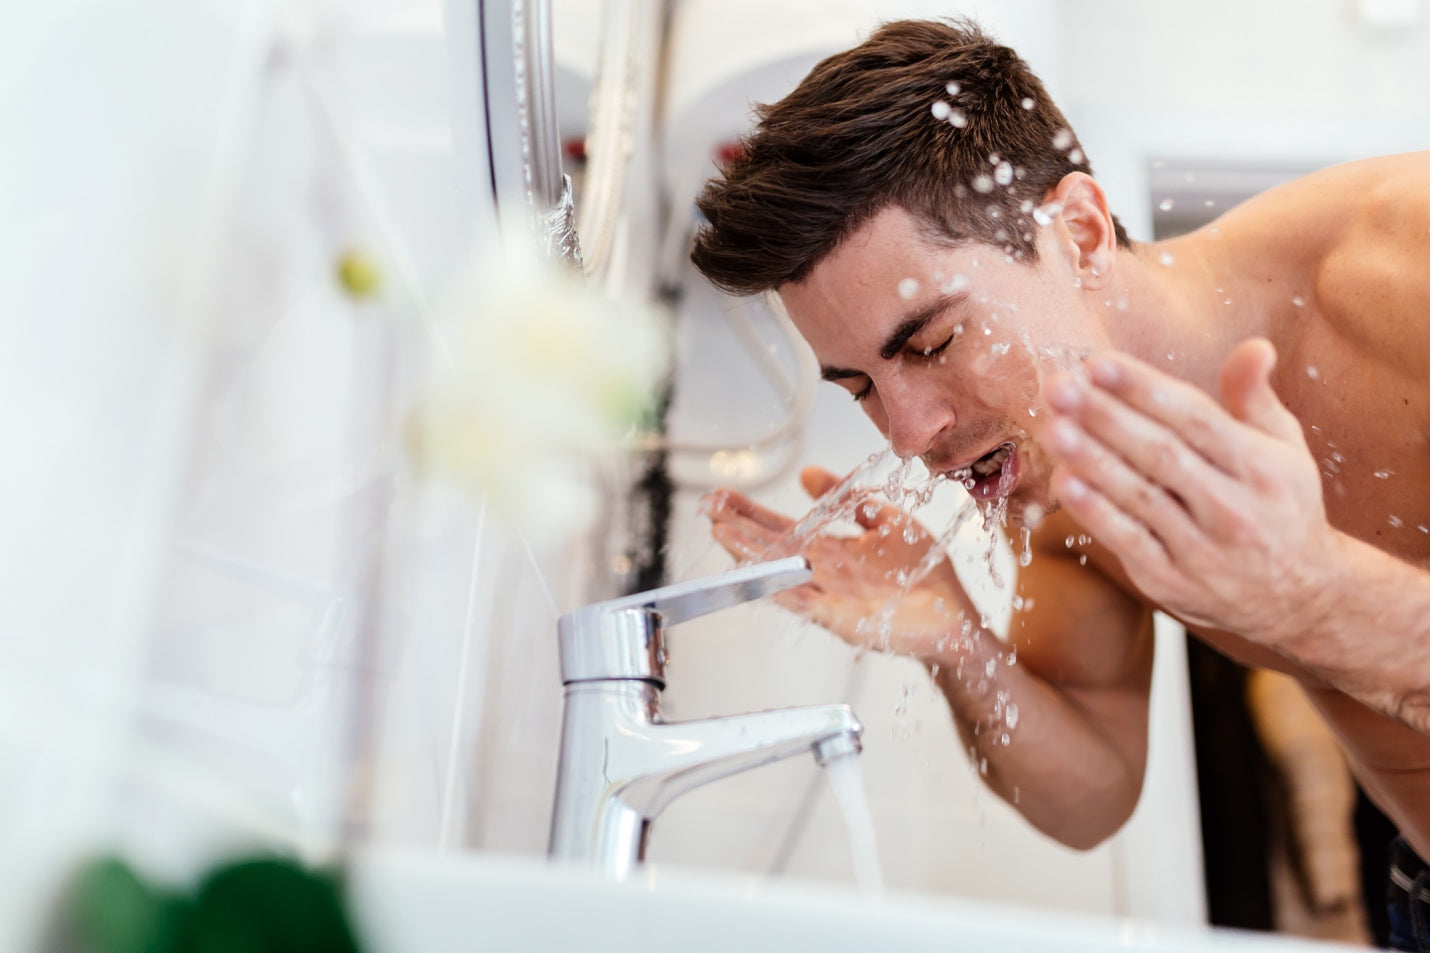 Man rinsing his face with water over the bathroom sink